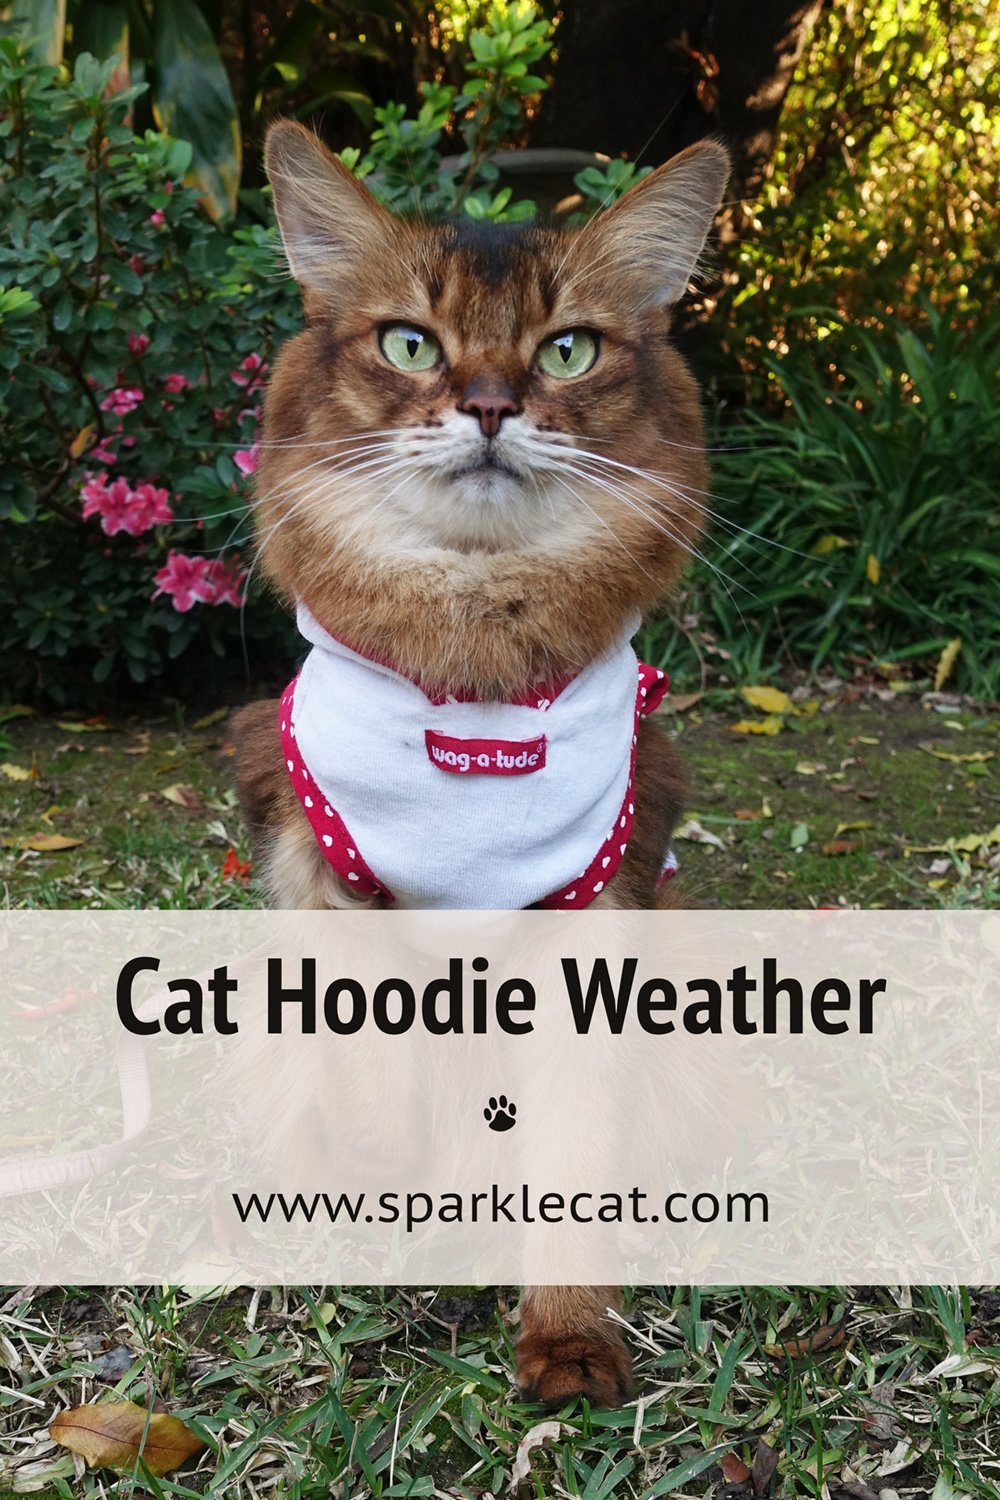 Cat Hoodie Weather